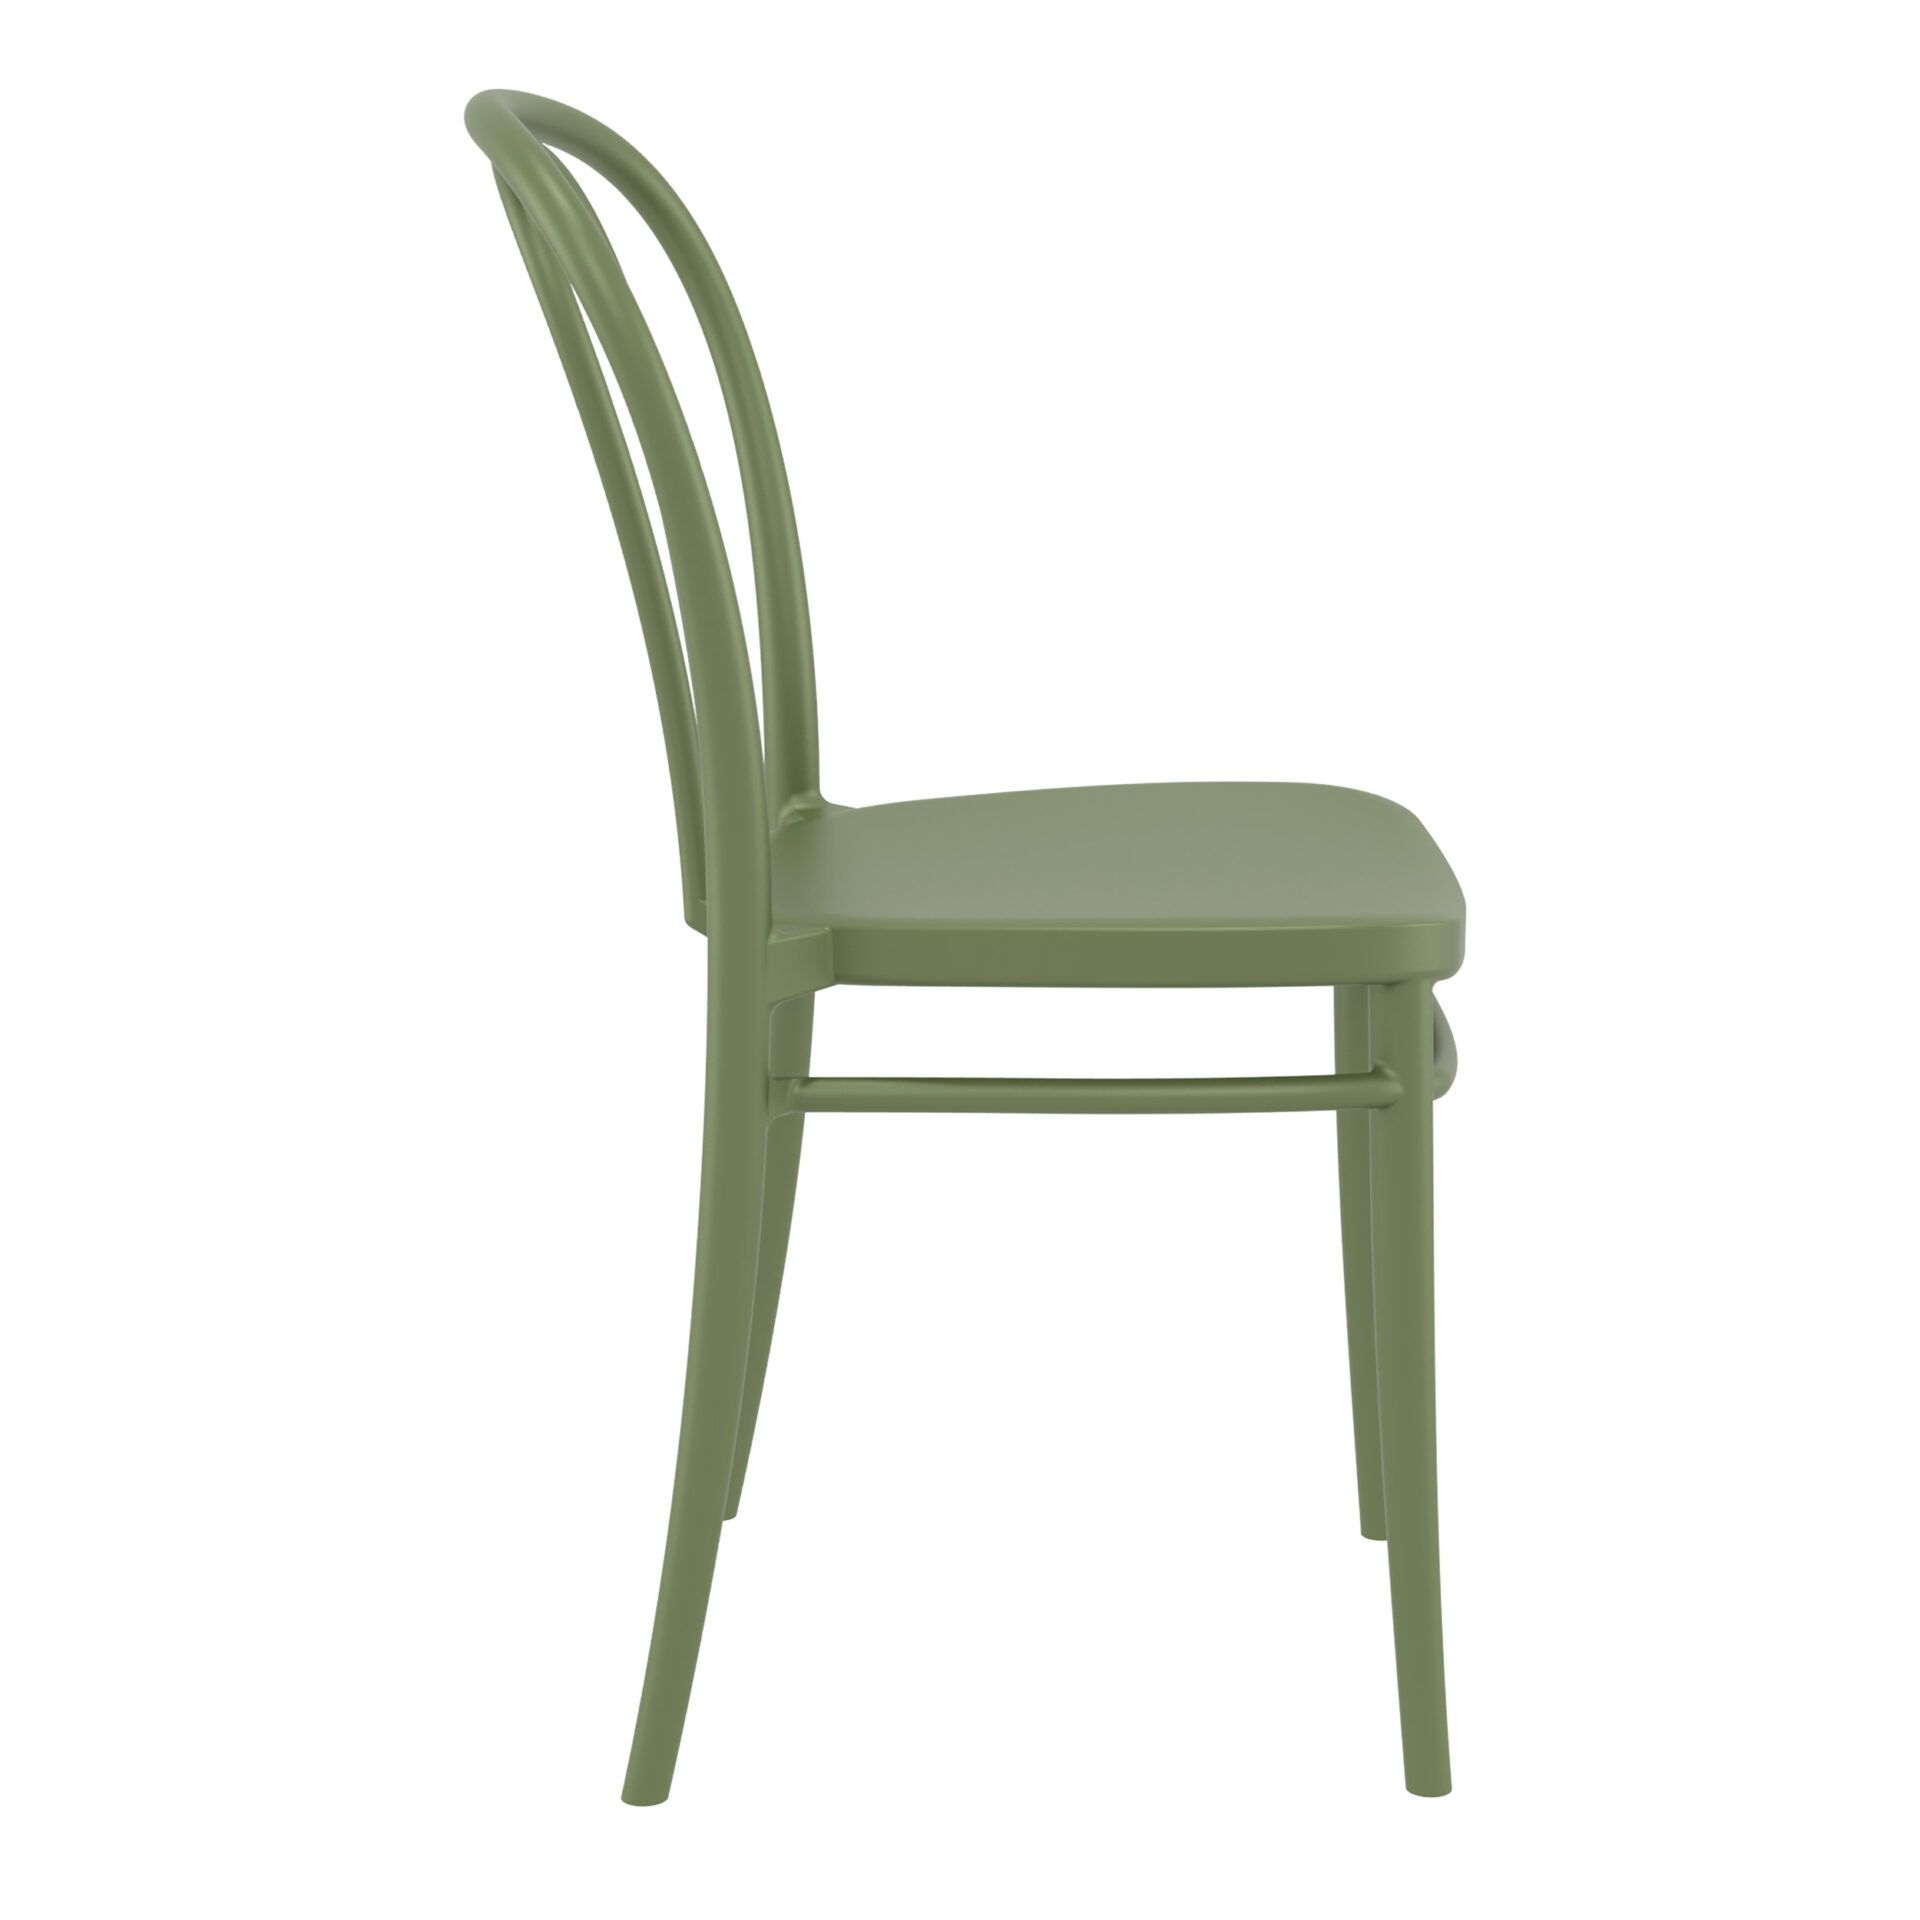 restaurant seating polypropylene victor chair olive green side